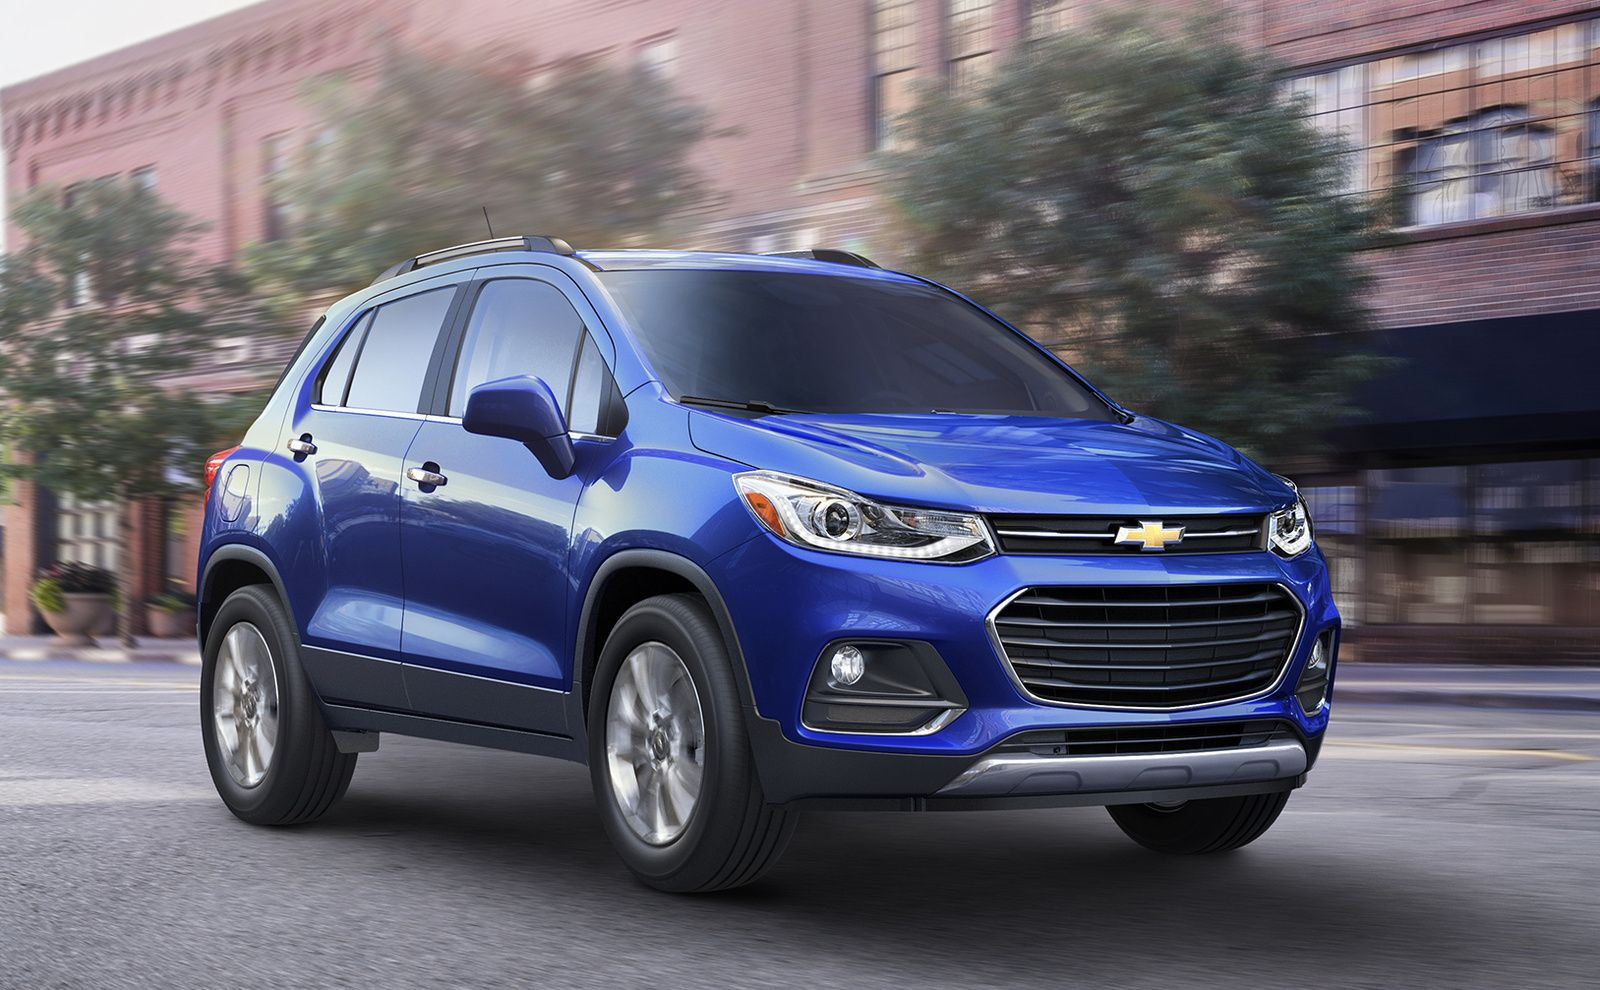 2016 2017 Chevrolet Trax For Sale In Your Area Cargurus Chevrolet Trax Mokka H R